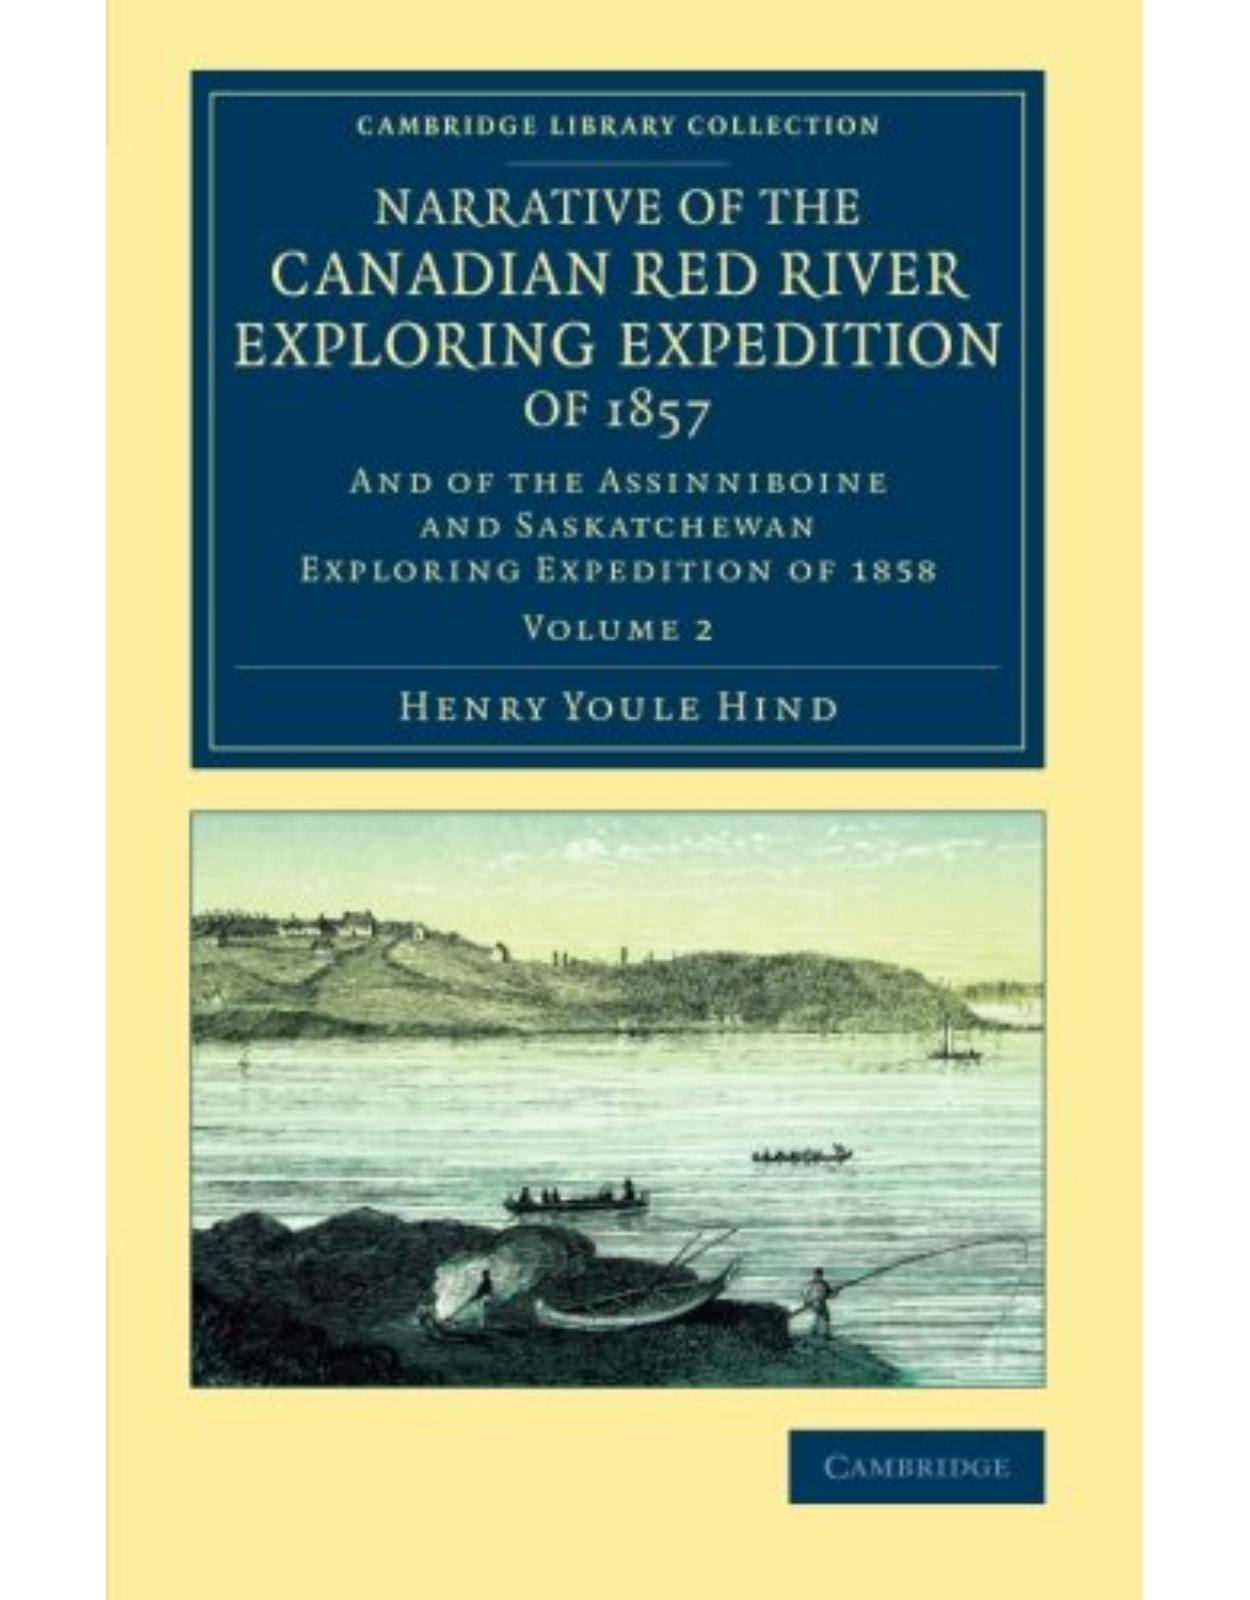 Narrative of the Canadian Red River Exploring Expedition of 1857 2 Volume Set: And of the Assinniboine and Saskatchewan Exploring Expedition of 1858)